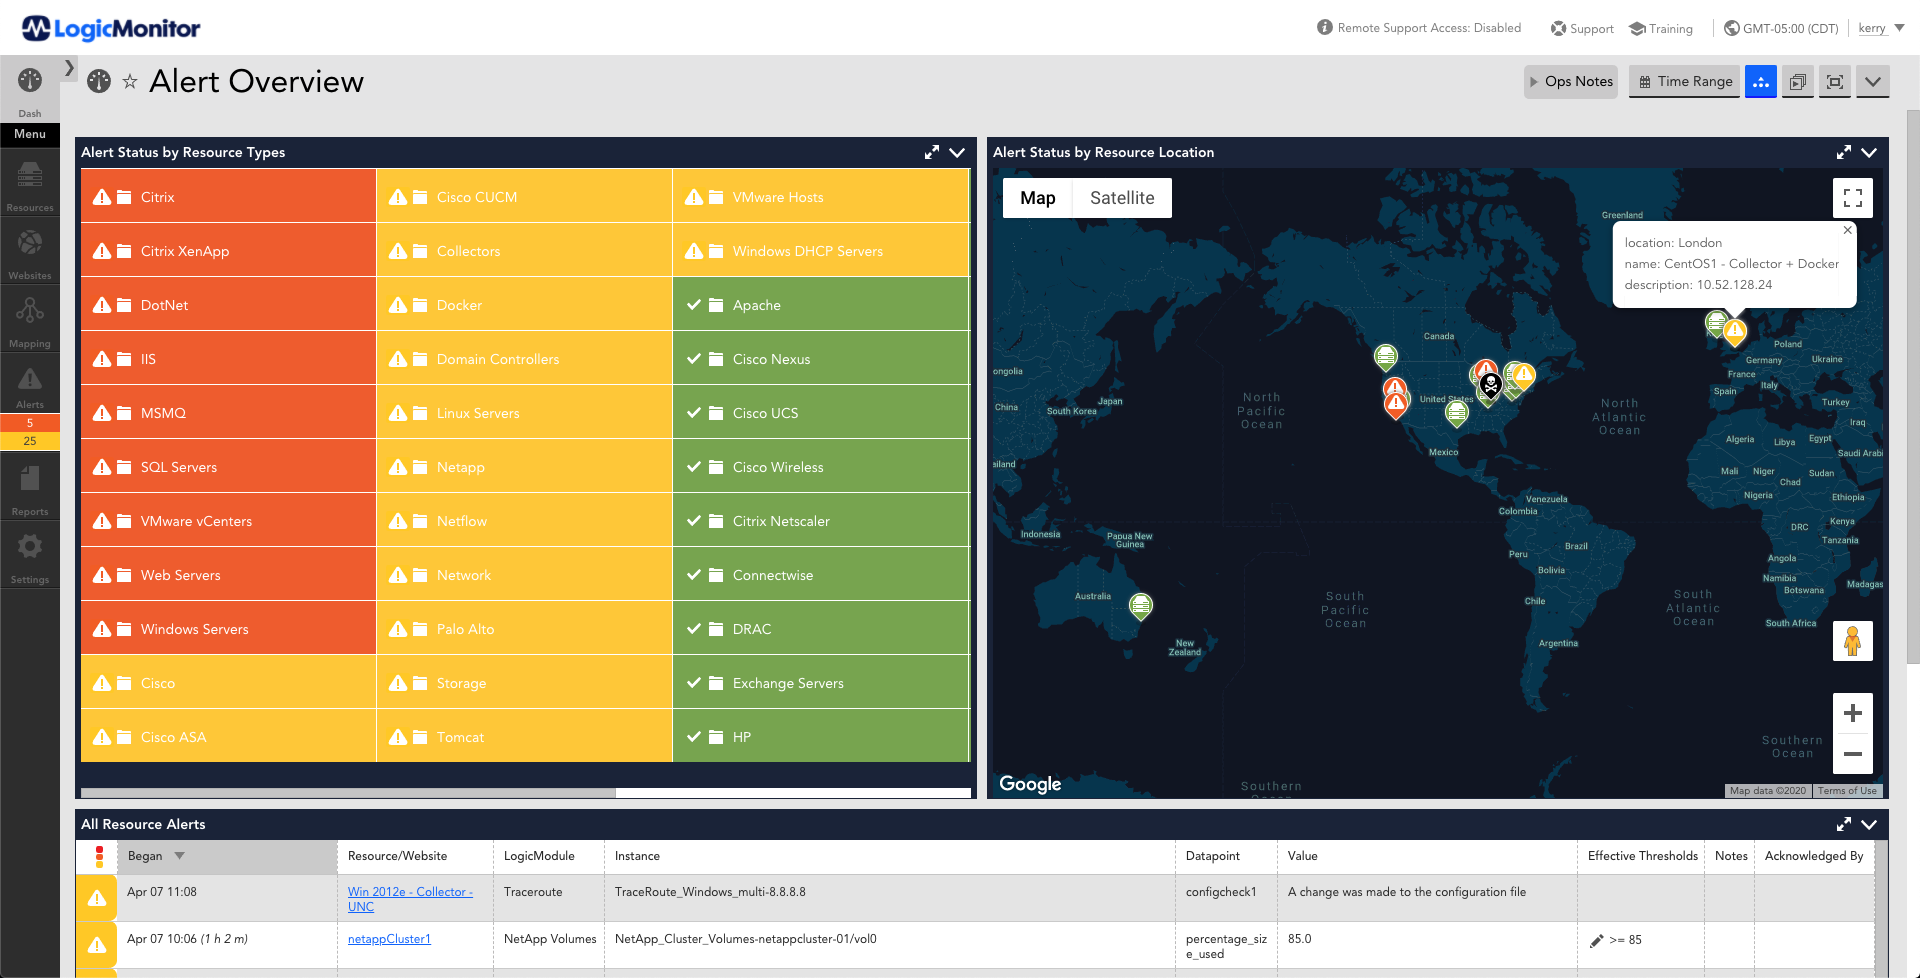 http://This%20dashboard%20provides%20an%20overview%20of%20Alerts.%20The%20metrics%20displayed%20are%20status%20by%20resource%20type,%20geolocation%20of%20resource%20groups%20and%20a%20listing%20of%20all%20alerts.